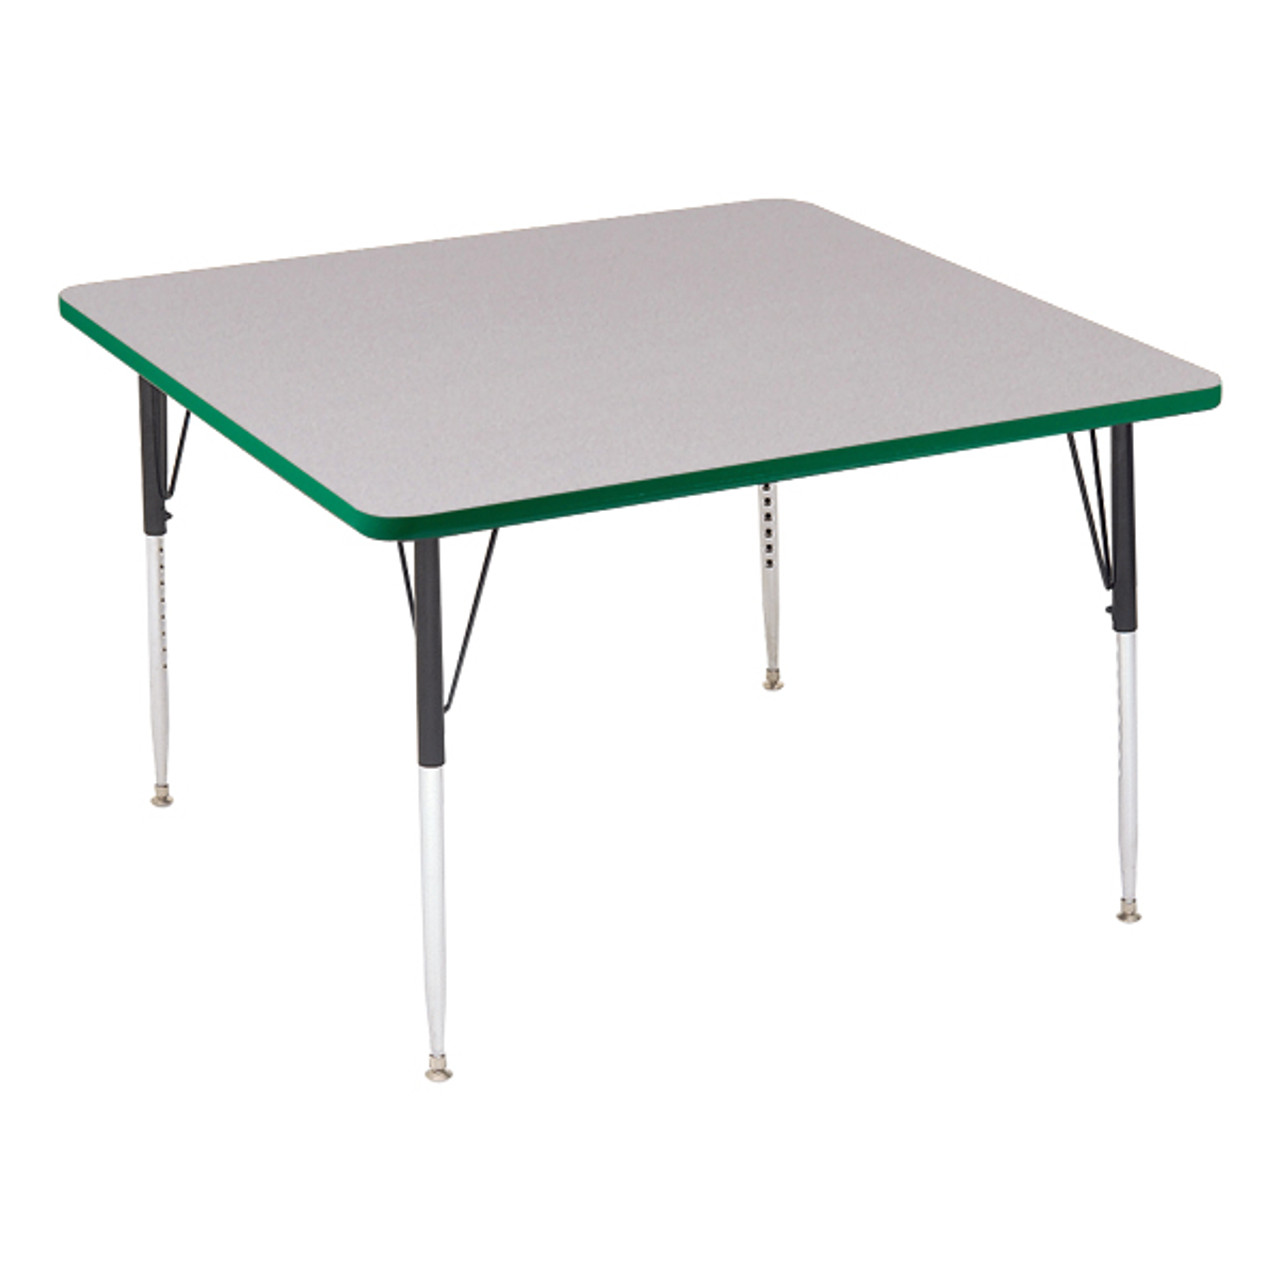 Superbe ... A4242 SQ High Pressure Square Shape Activity Table 42 Inch Diameter  Adjustable Height ...